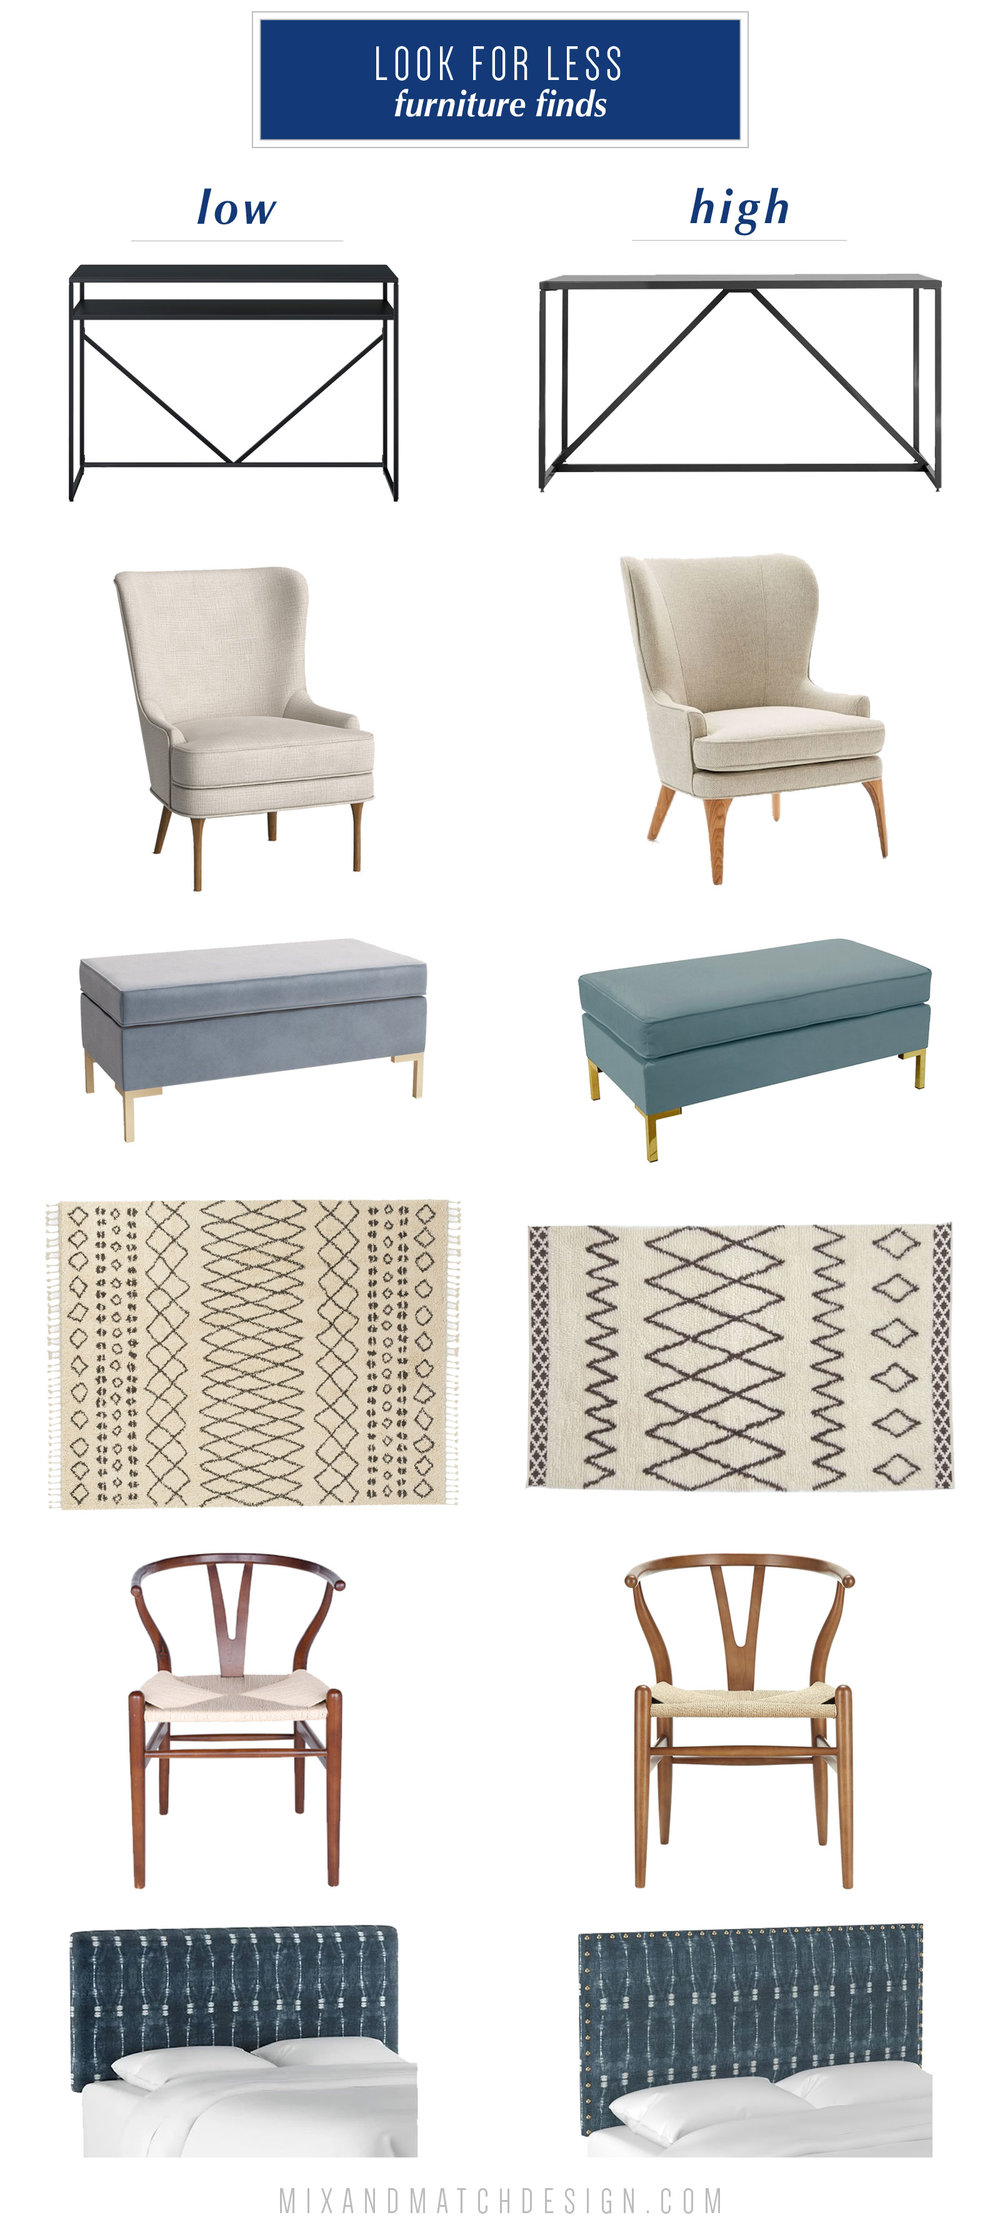 """Taking a look back at the top 10 blog posts for Mix & Match Design Company of 2018! Come see what was popular in interior decorating, design tips, e-design projects, and more. This """"look for less"""" post made the list! Come see more of my high/low finds over on the blog."""